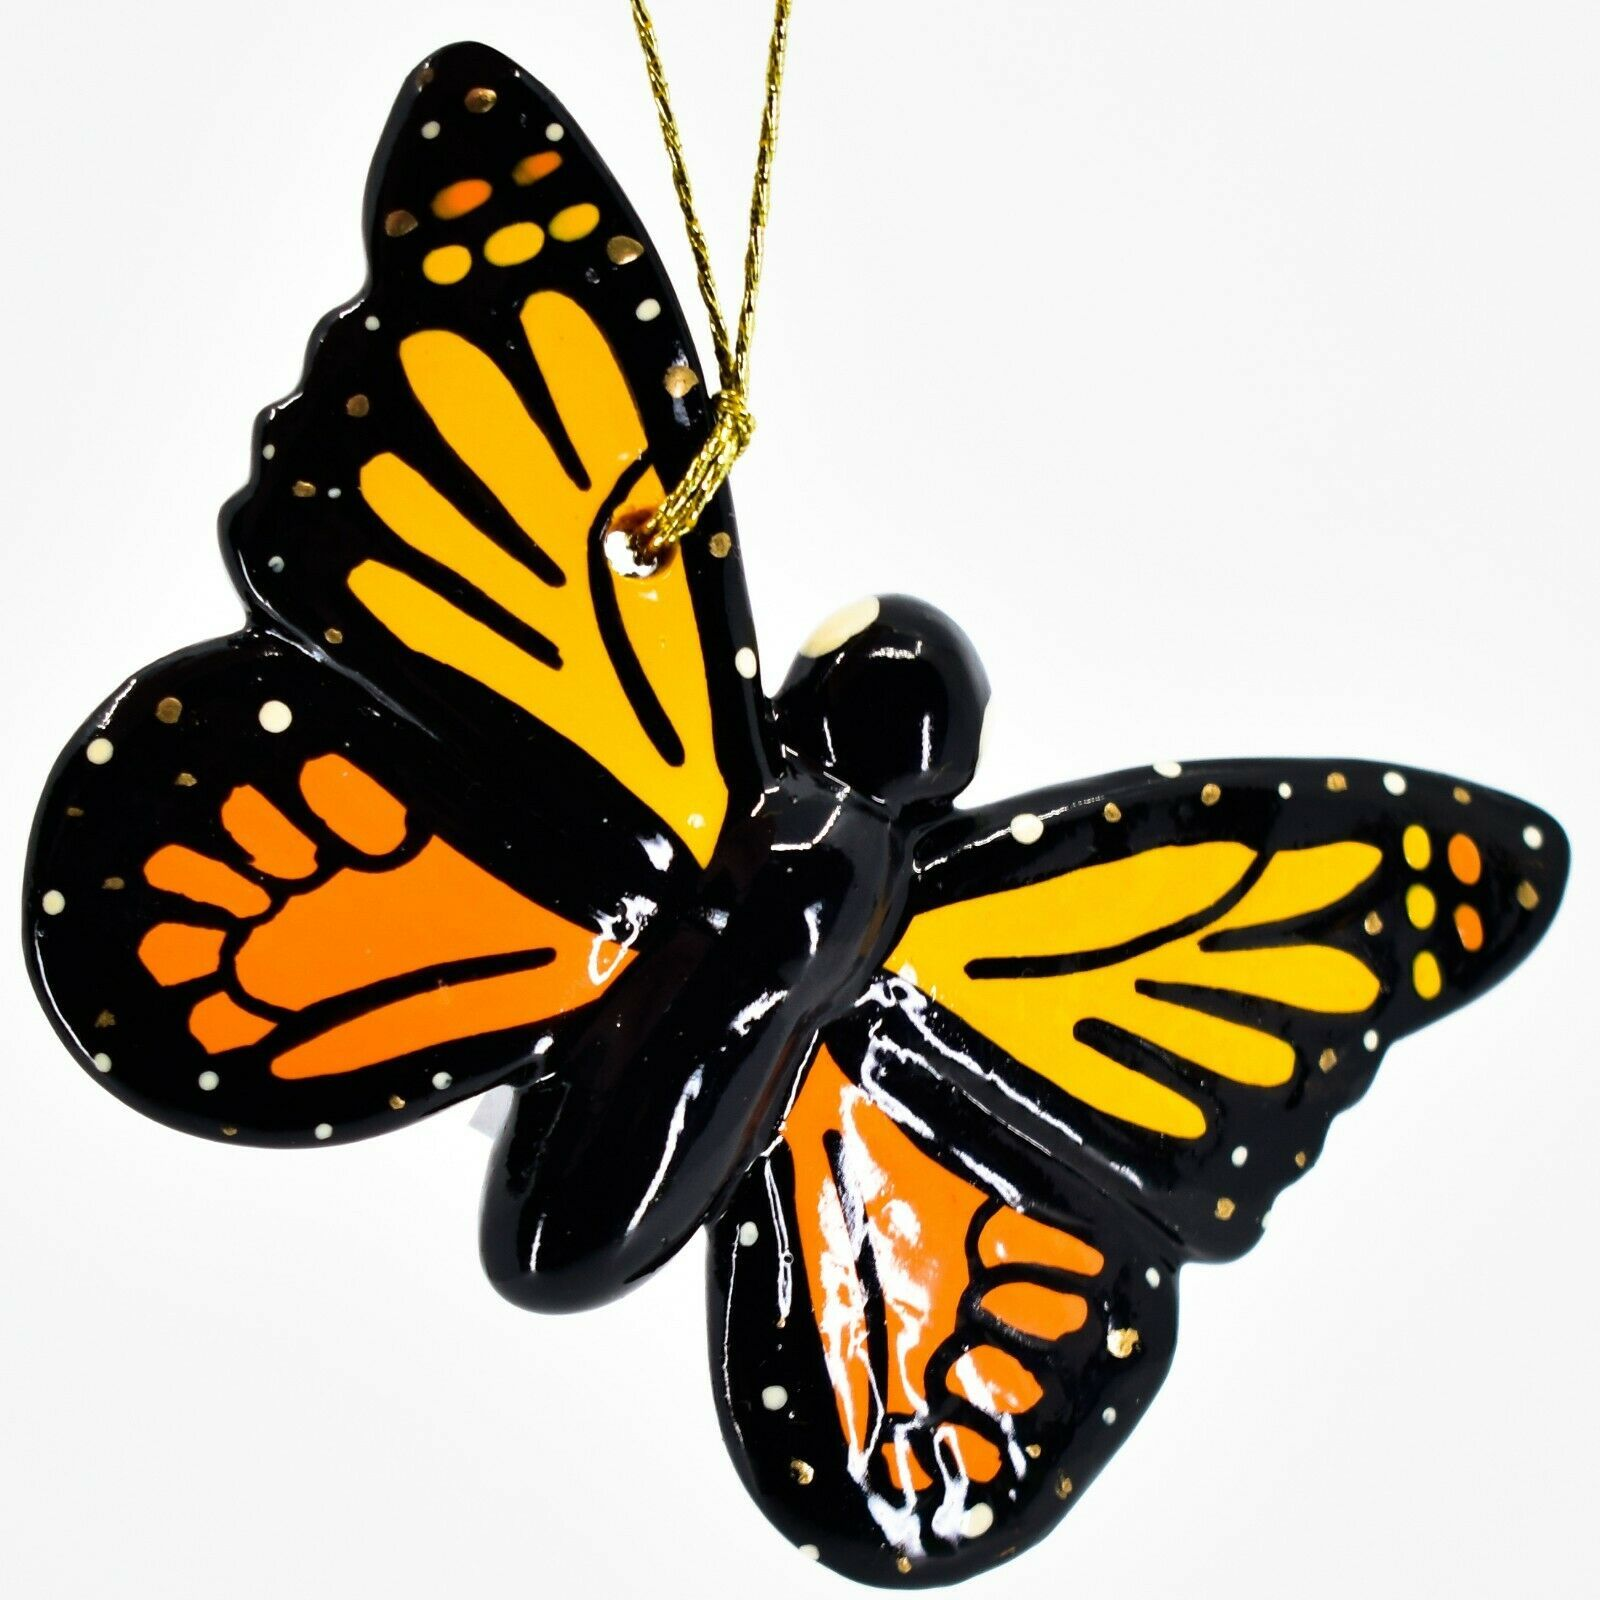 Handcrafted Painted Ceramic Monarch Butterfly Confetti Ornament Made in Peru